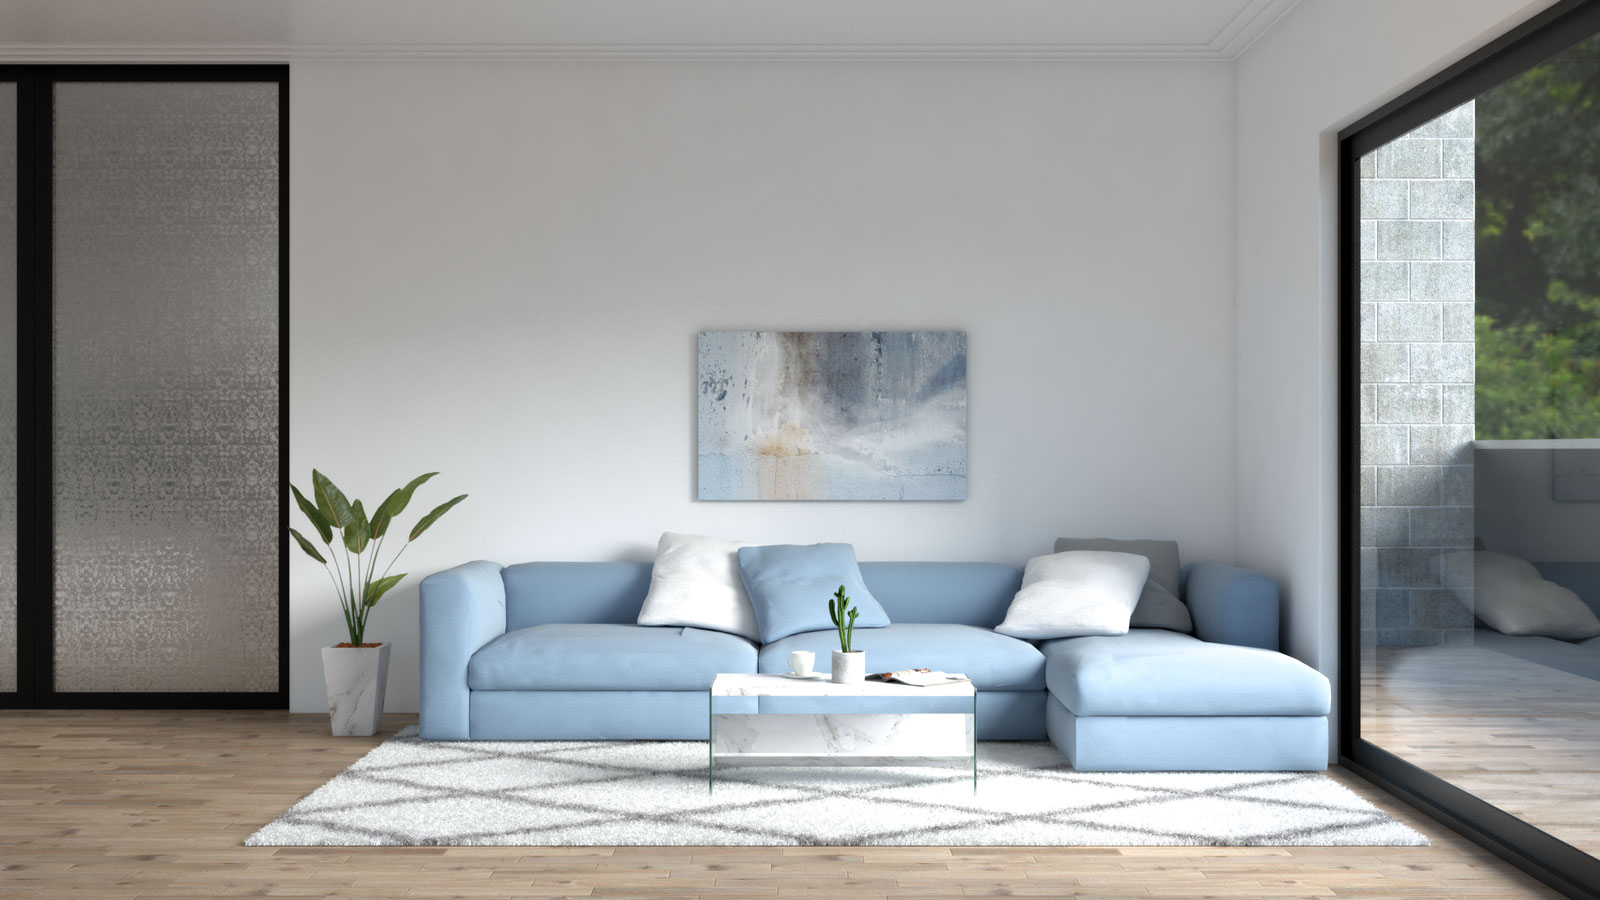 Living room with blue sofa and white accent